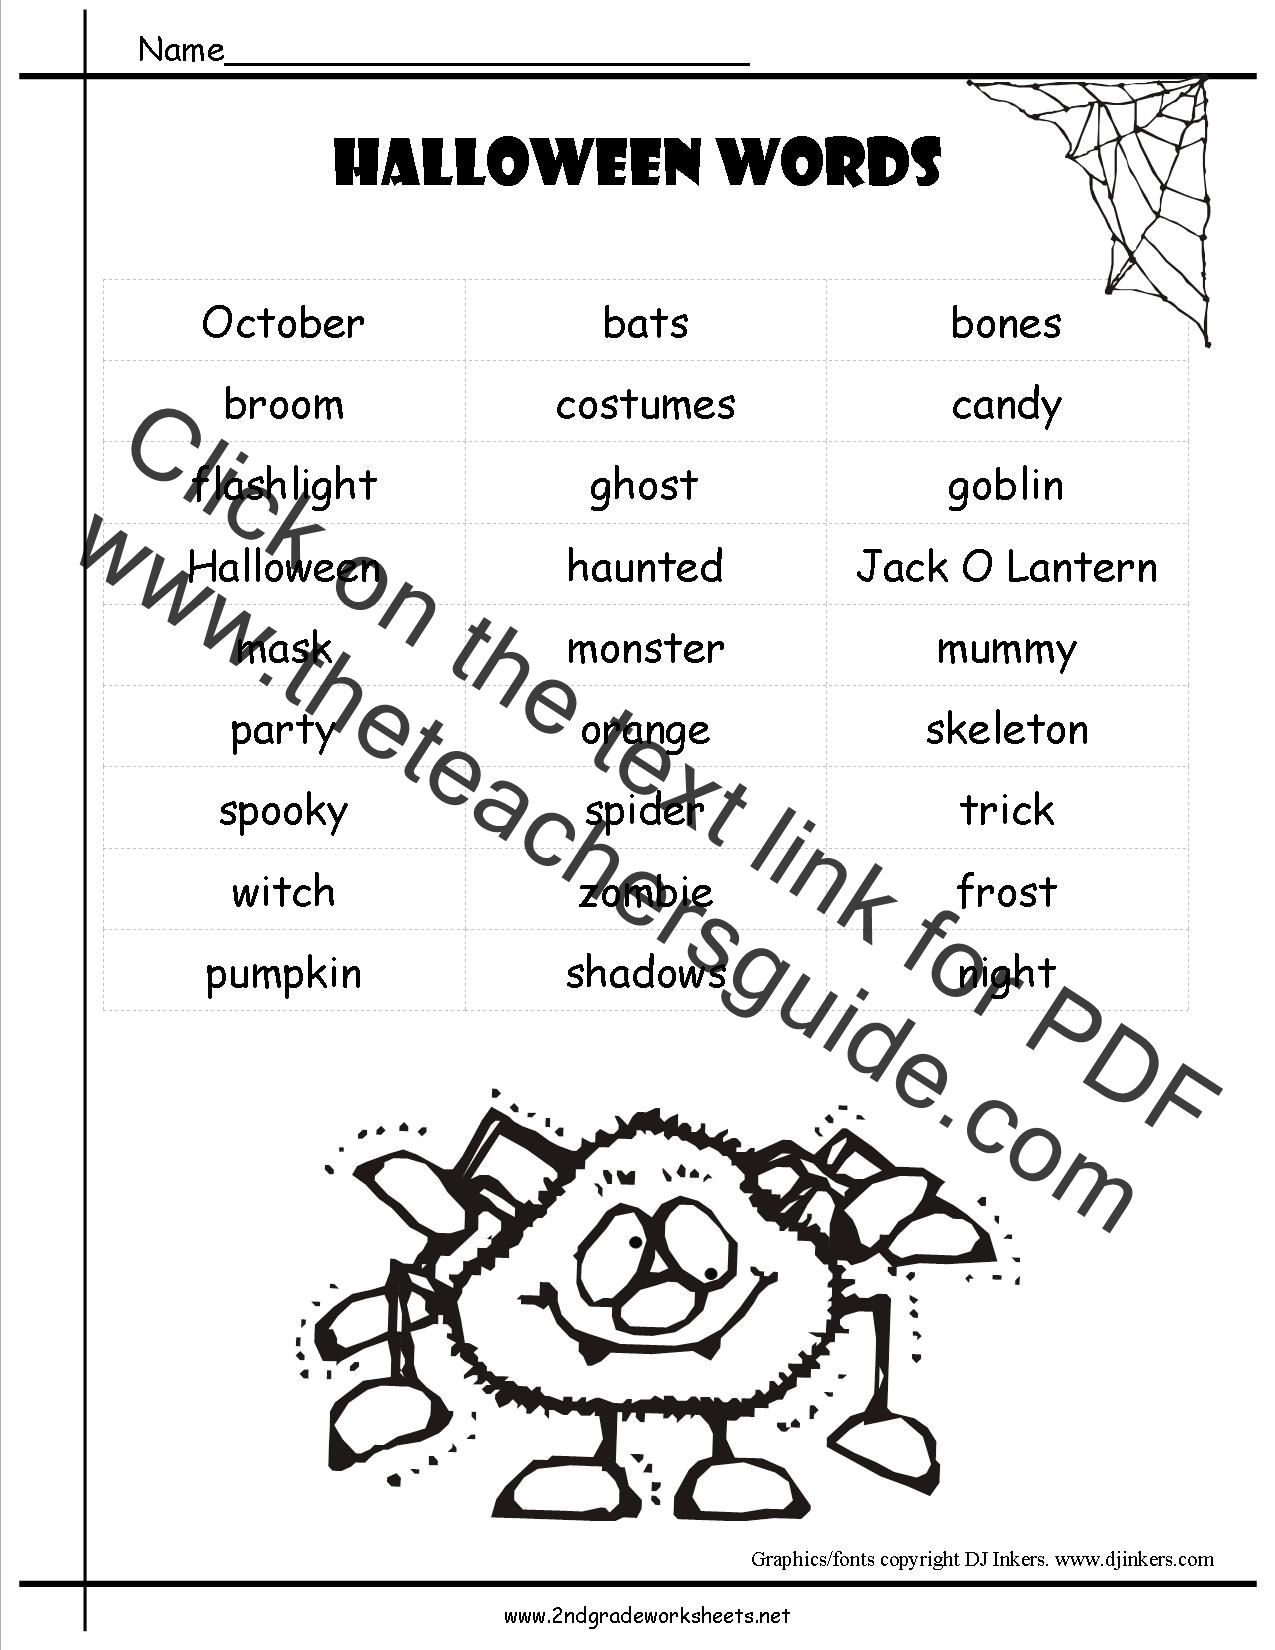 Worksheet Halloween Math Activity